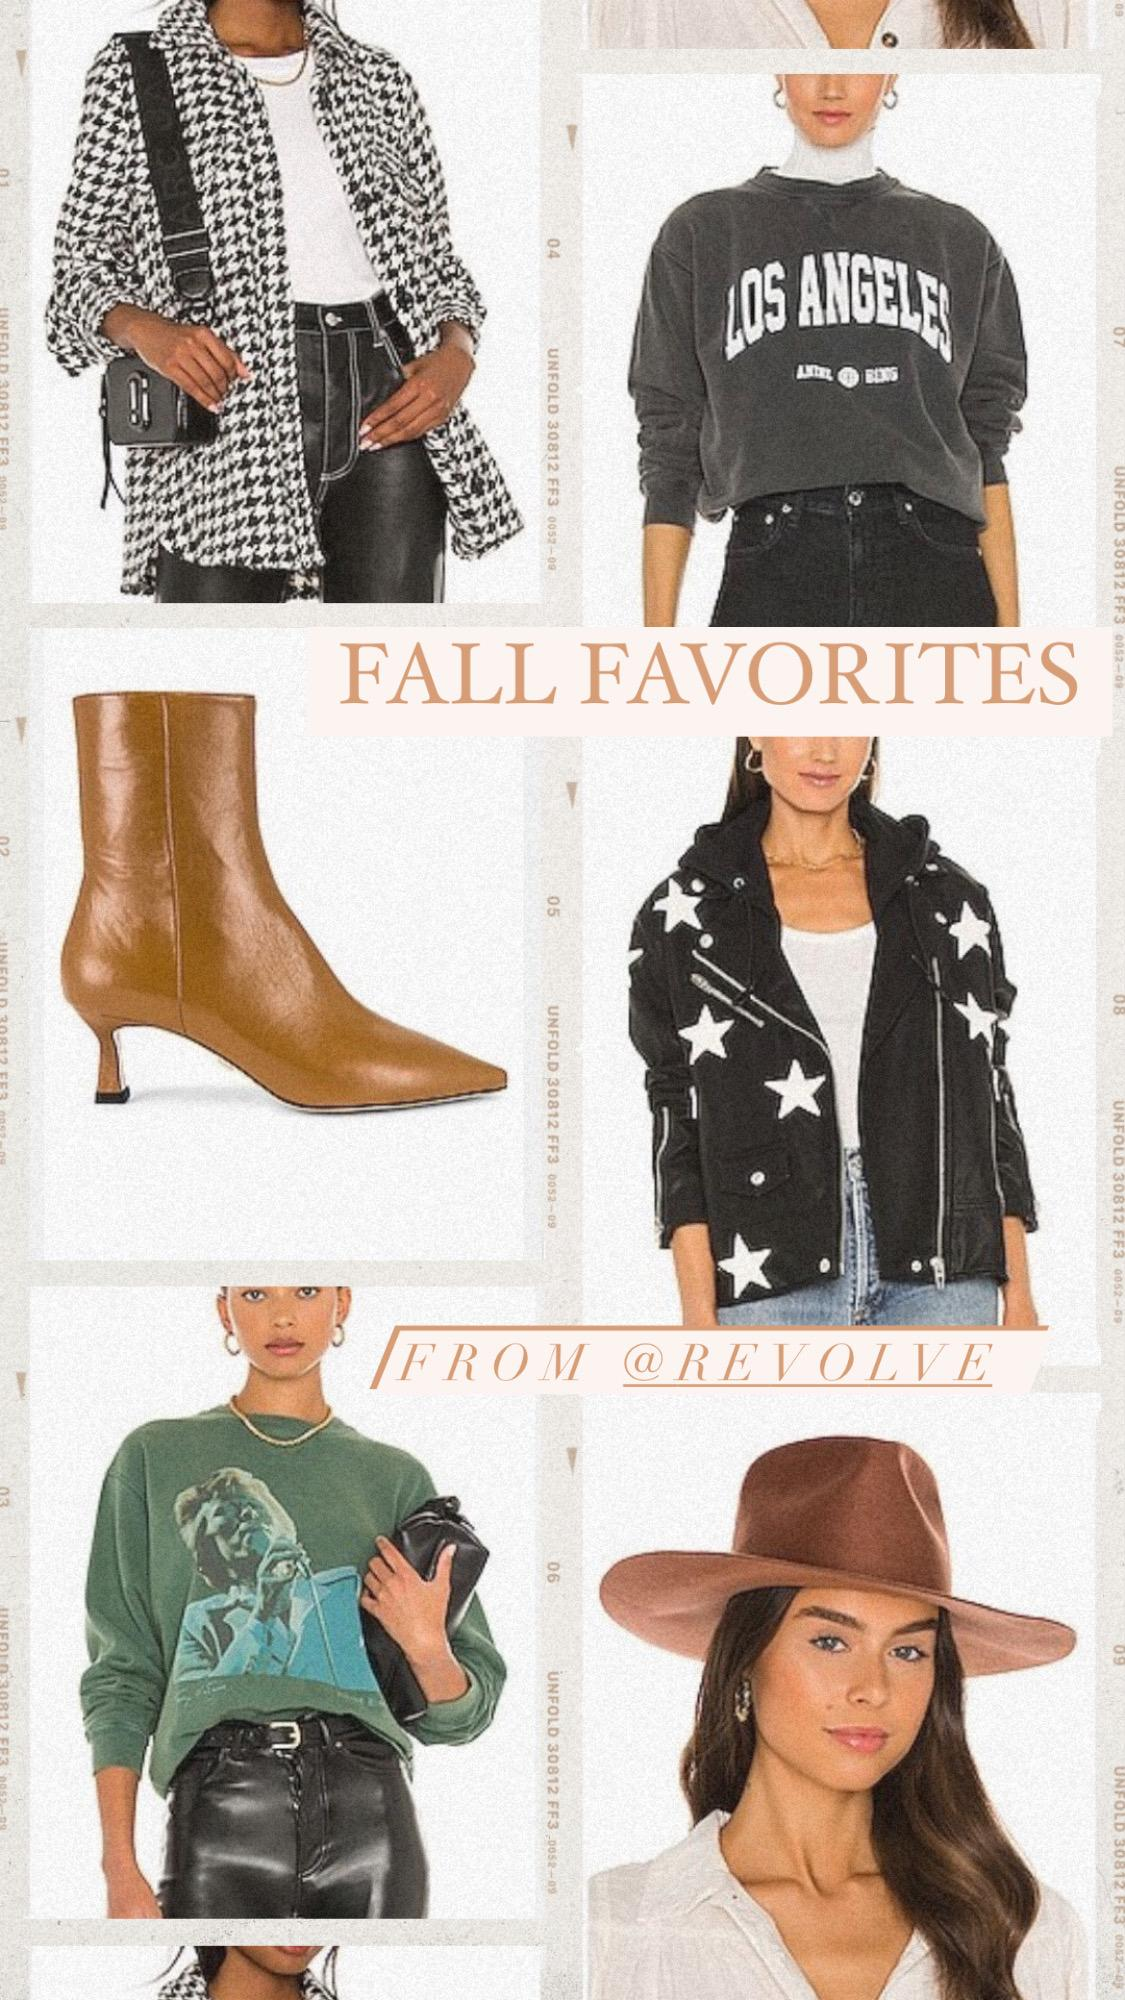 FALL FAVORITES FROM REVOLVE